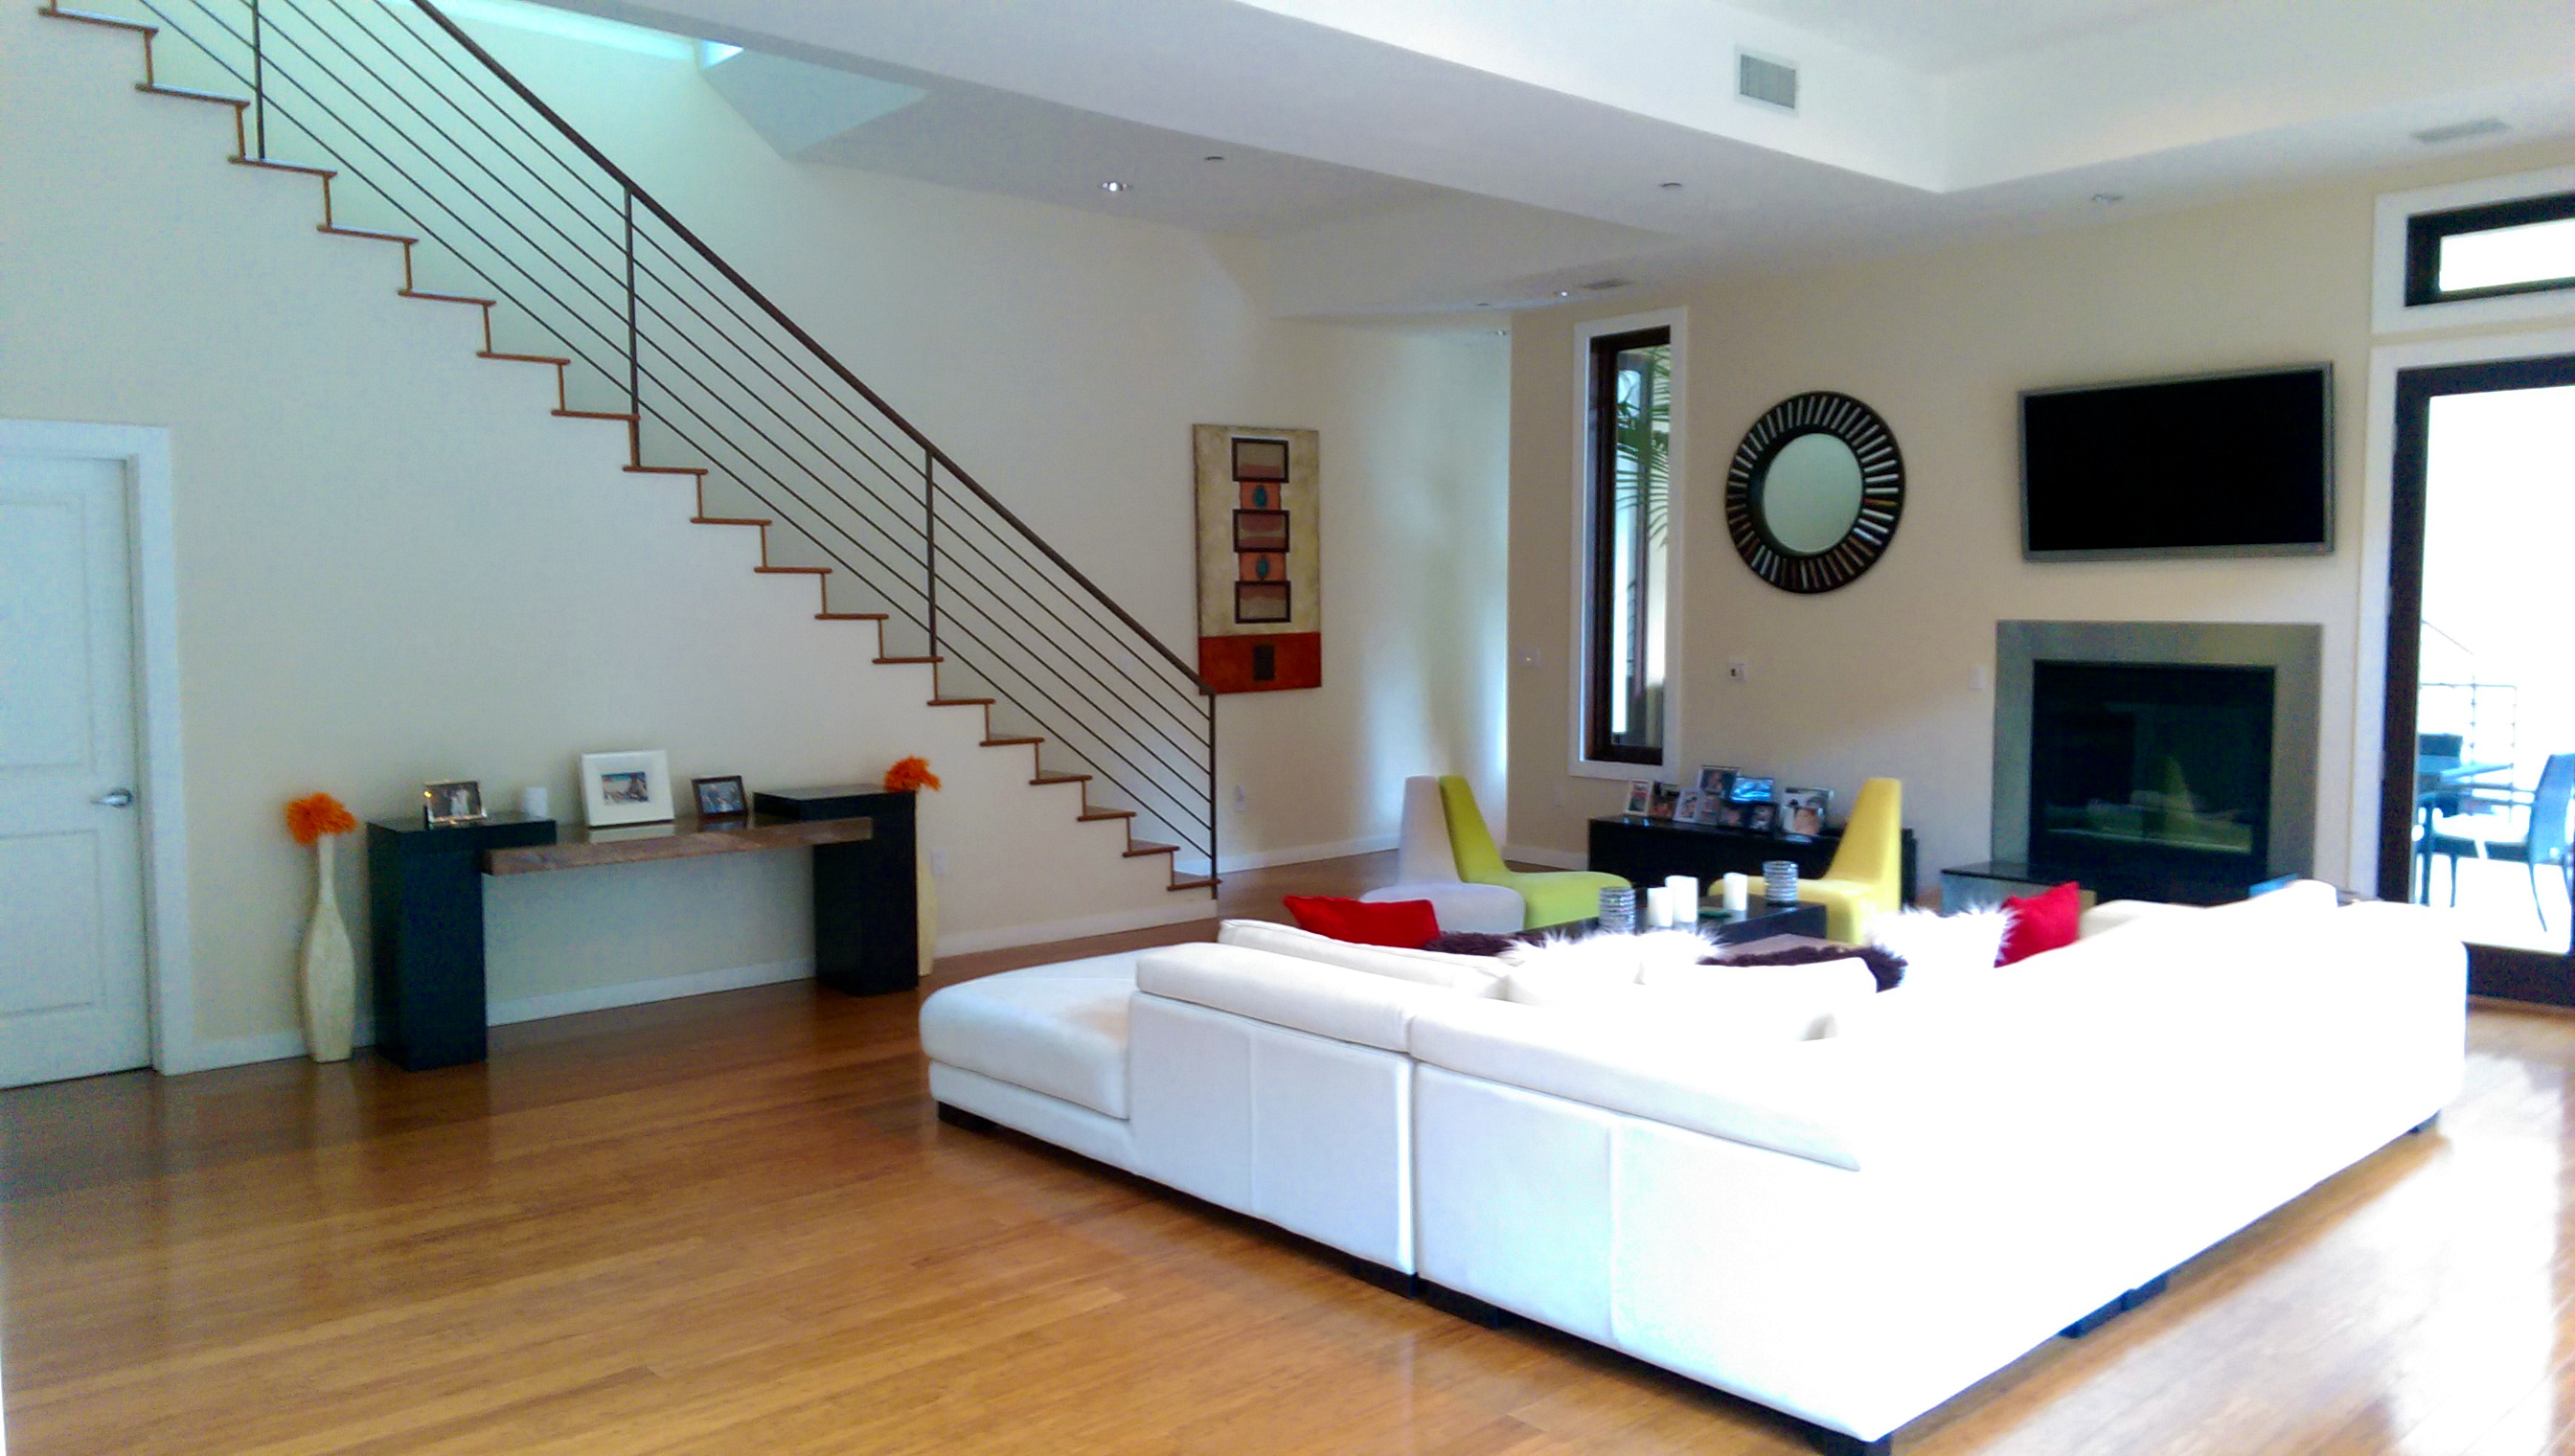 Living Room, Architectural, Home for Sale, Beverly Hills, BHPO, Beverly Hills Post Office